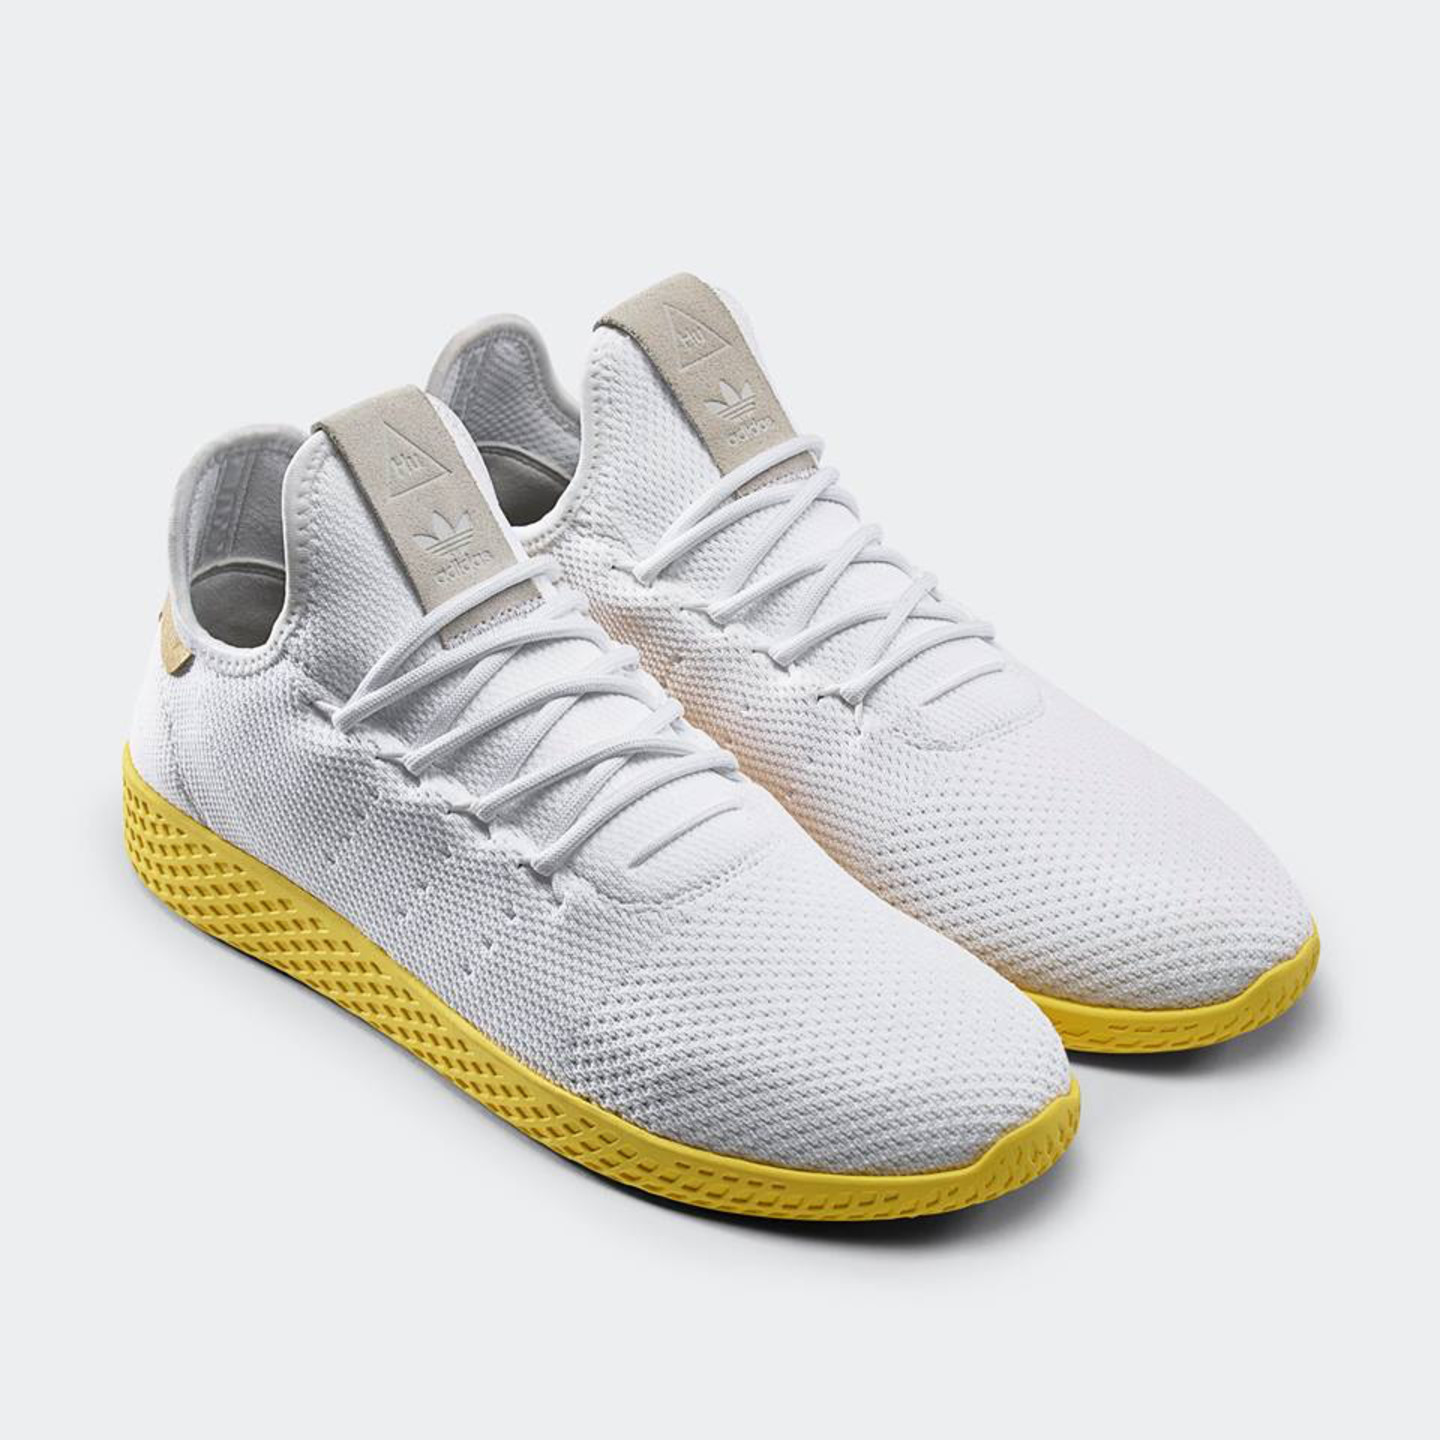 new style 2fd28 5fd50 Adidas PW Tennis HU. Ftwwht  Yellow  Gold Human Race by Pharrell